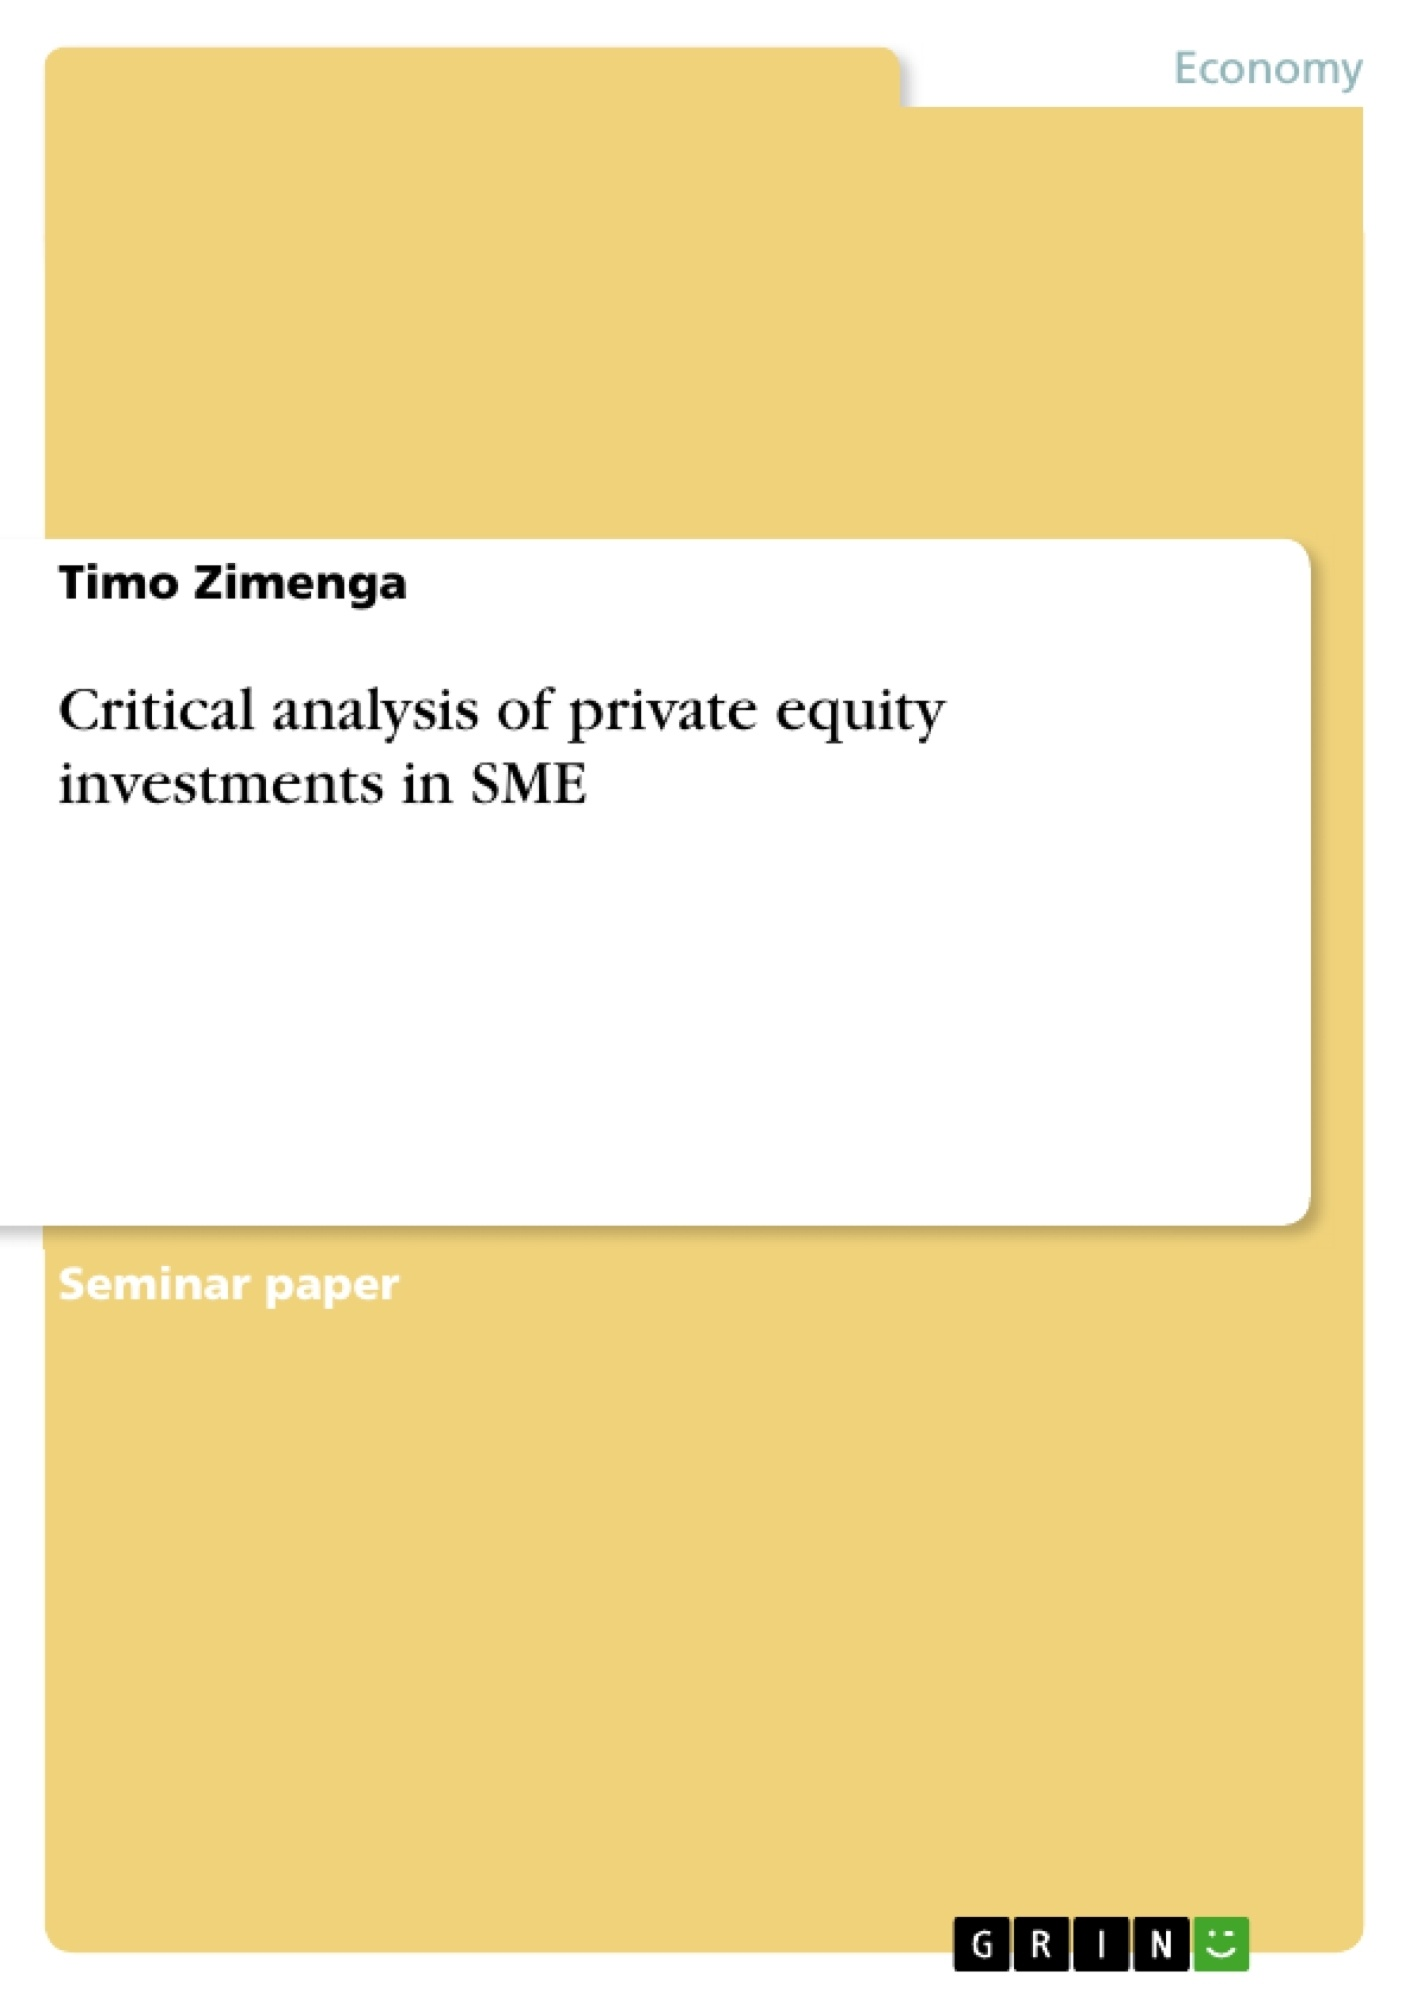 Title: Critical analysis of private equity investments in SME